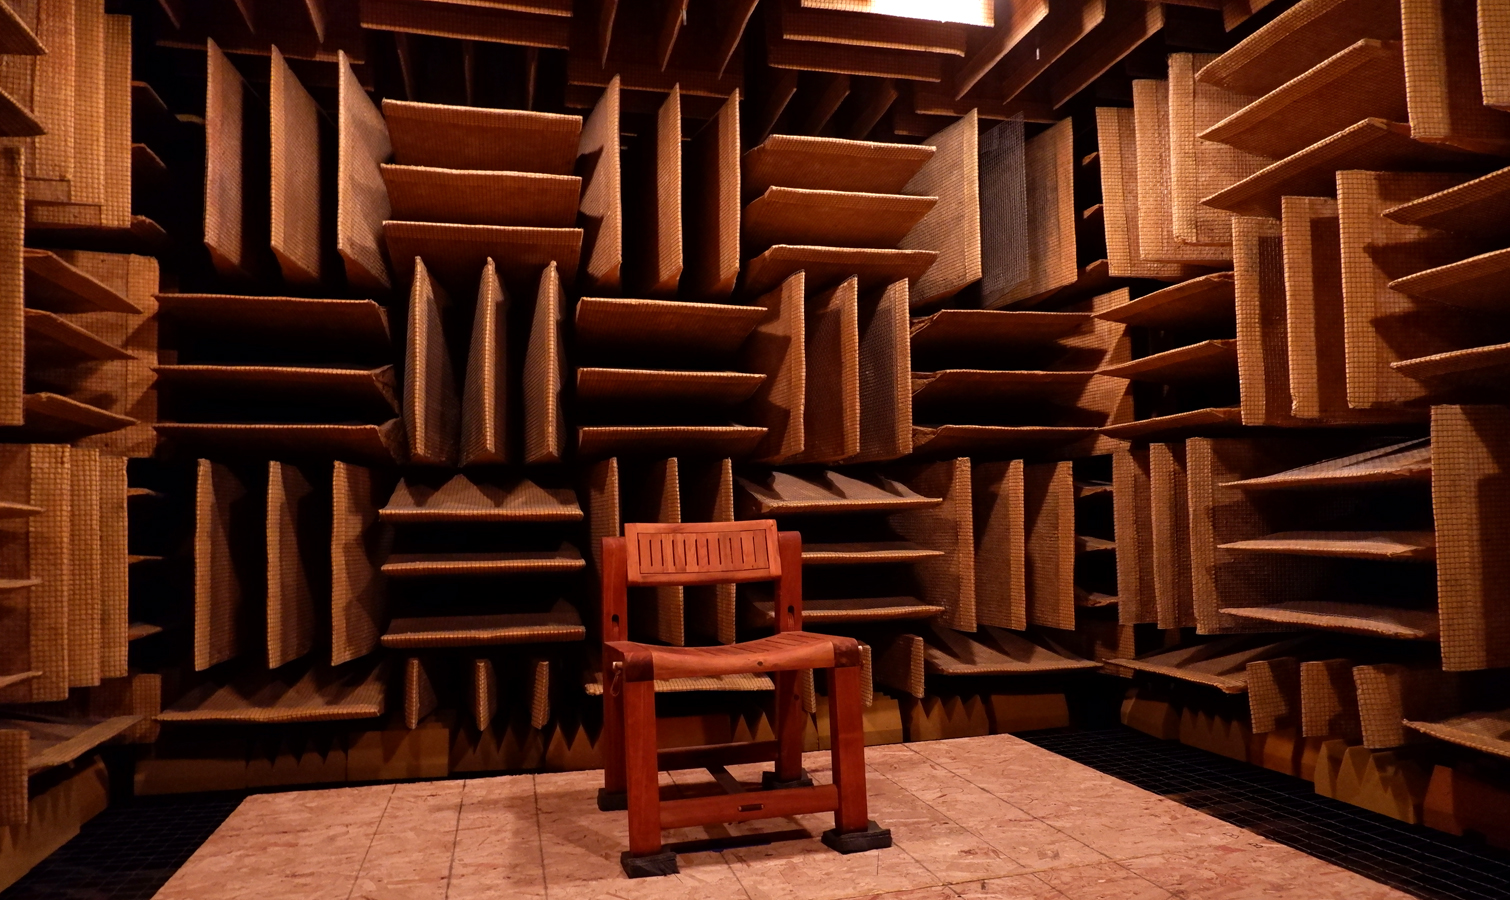 Anechoic Chamber at Orfield Laboratories